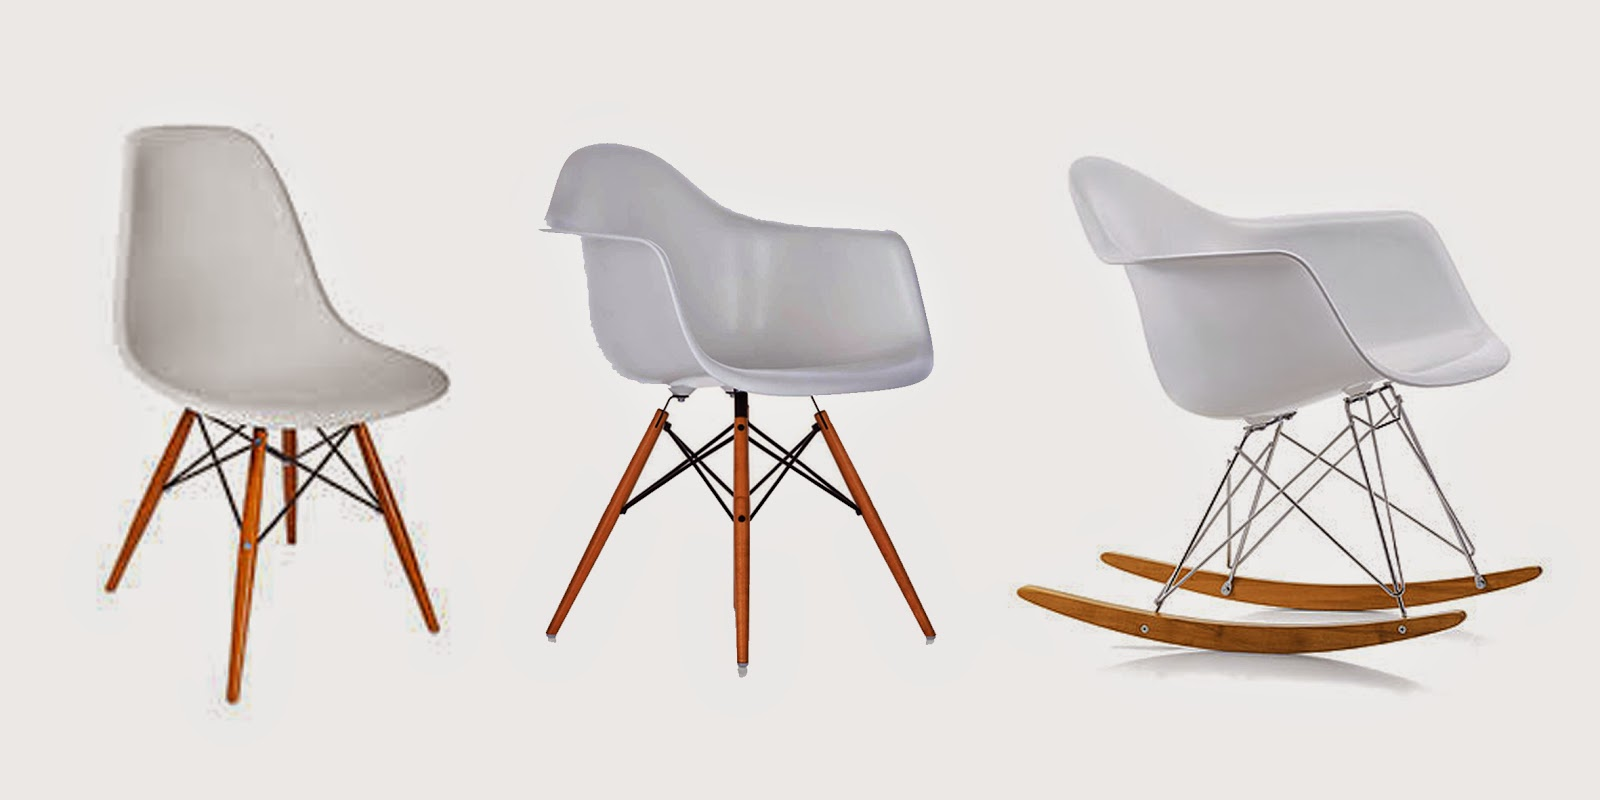 three ways of using eames la chaise chair and table 2